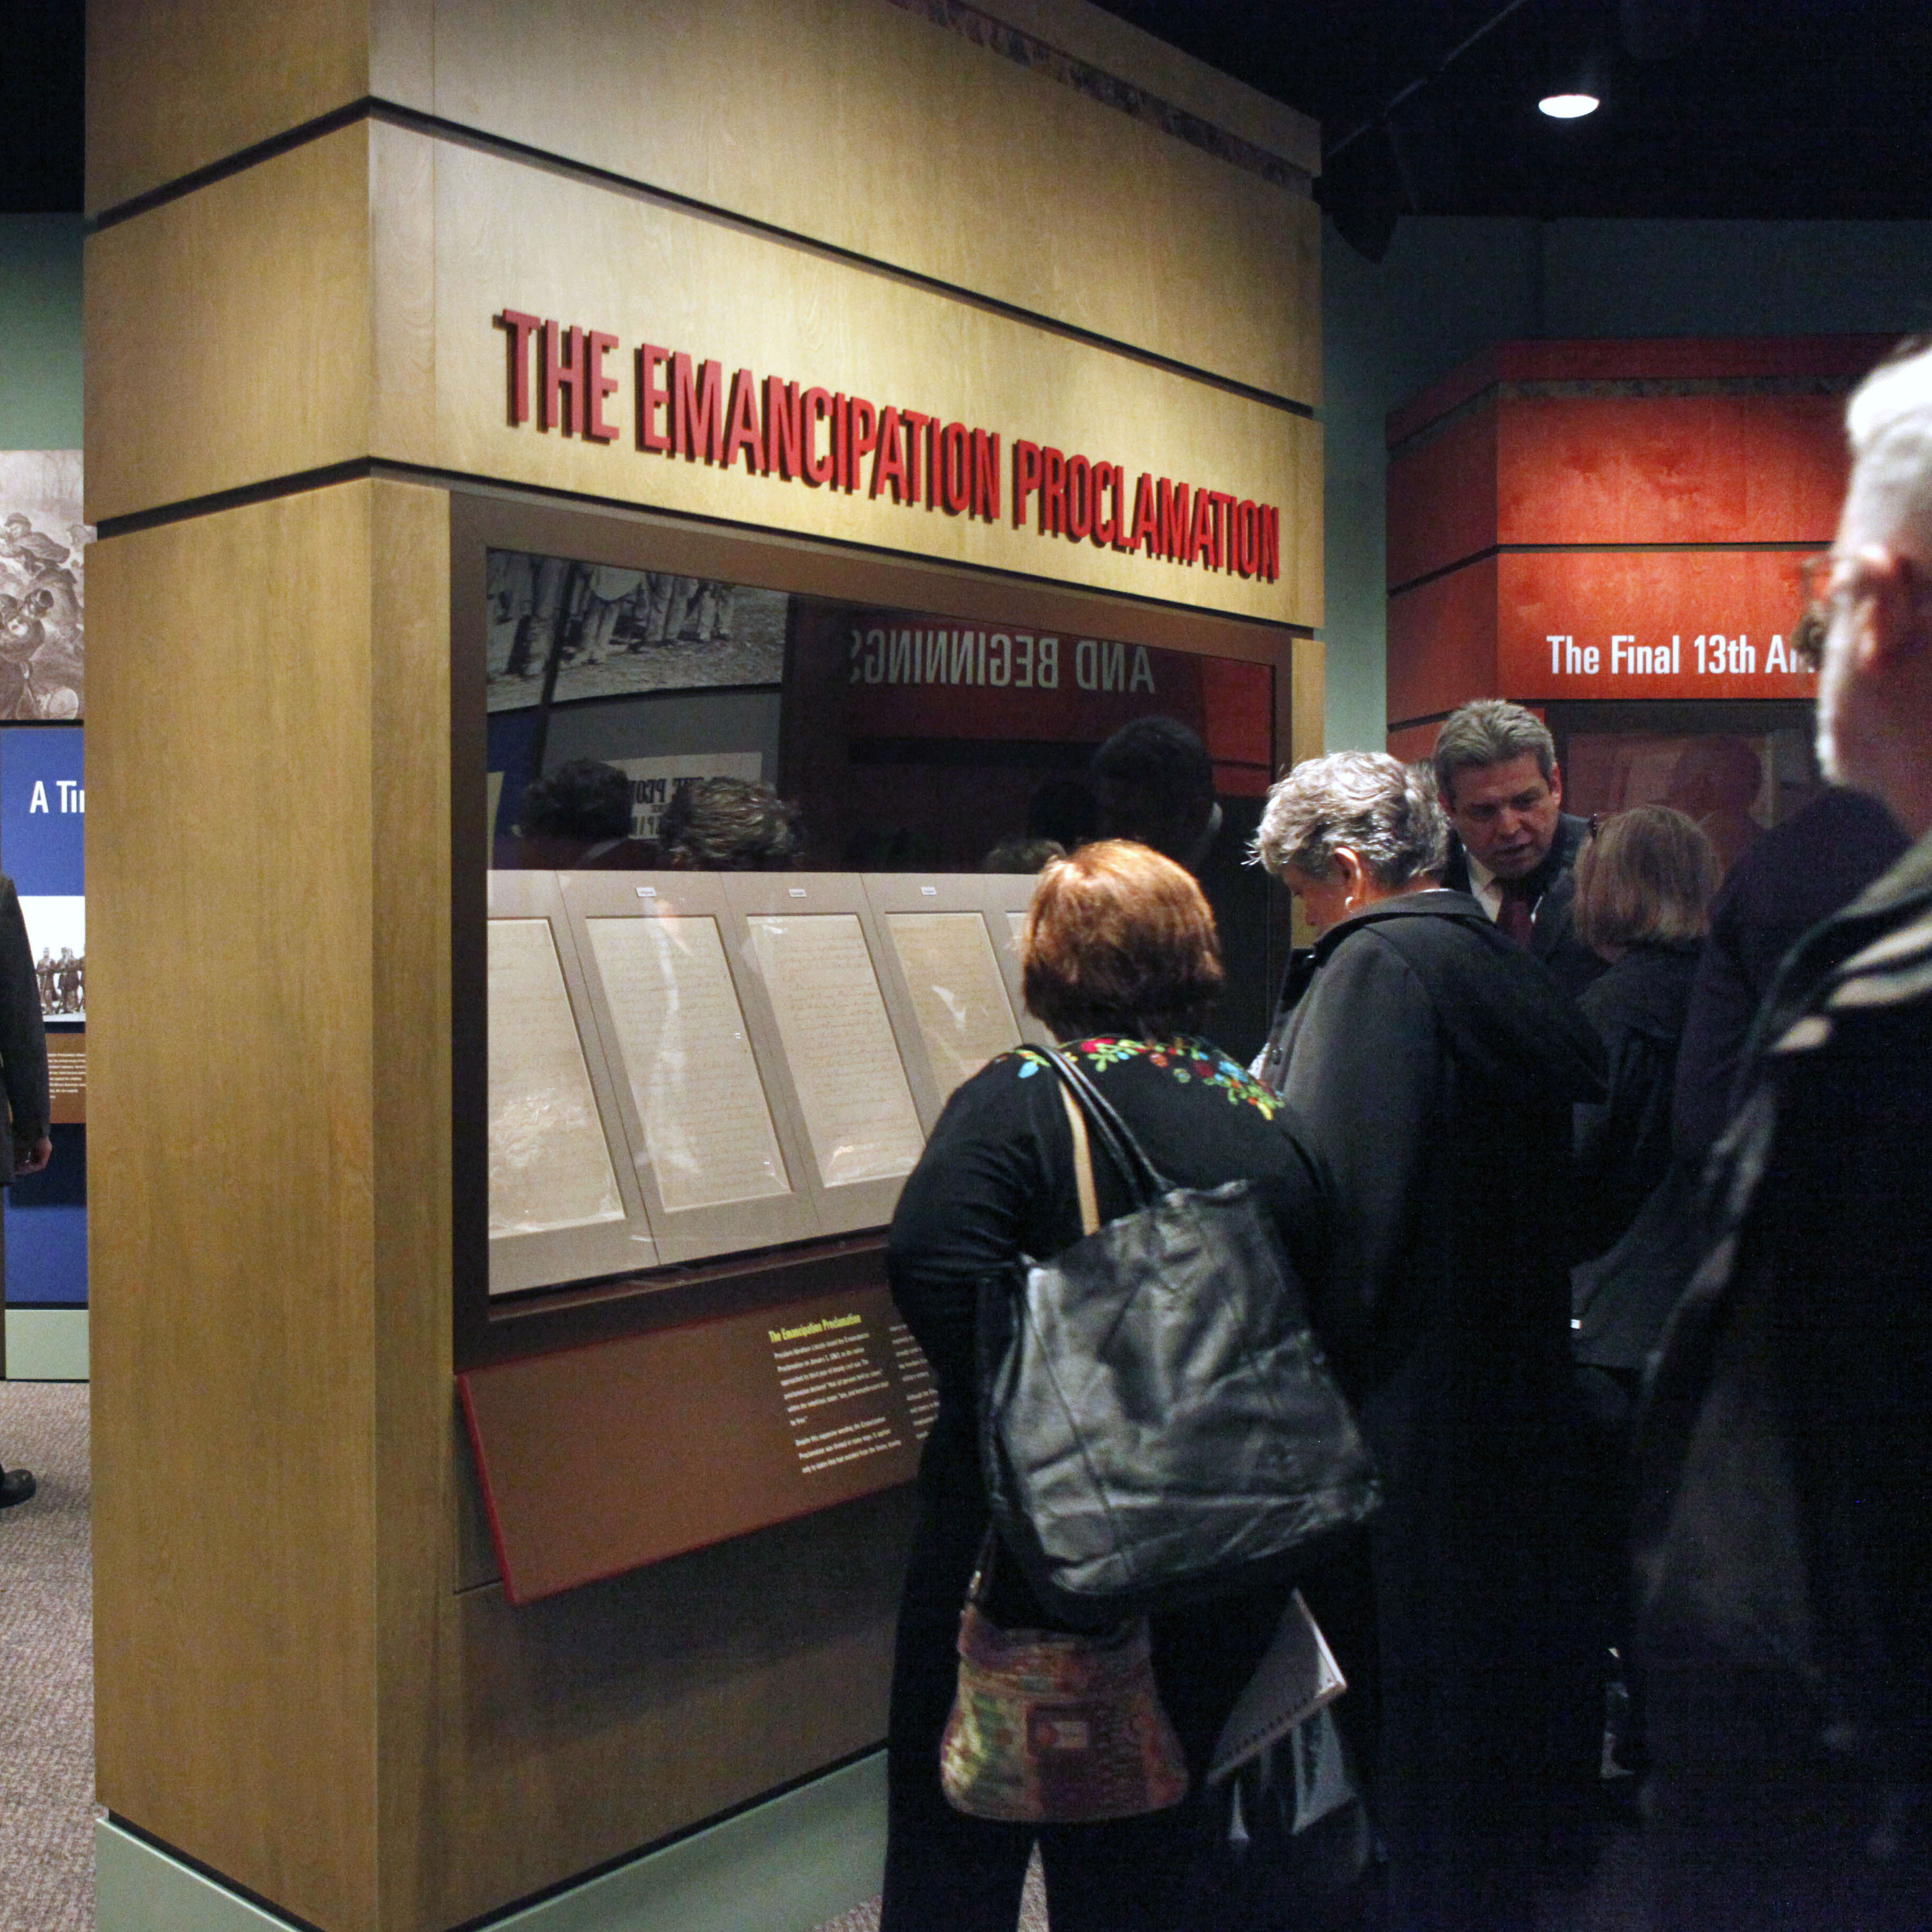 People look at a display of the emancipation proclamation at the National Archives in Washington, Thursday, Nov. 4, 2010.